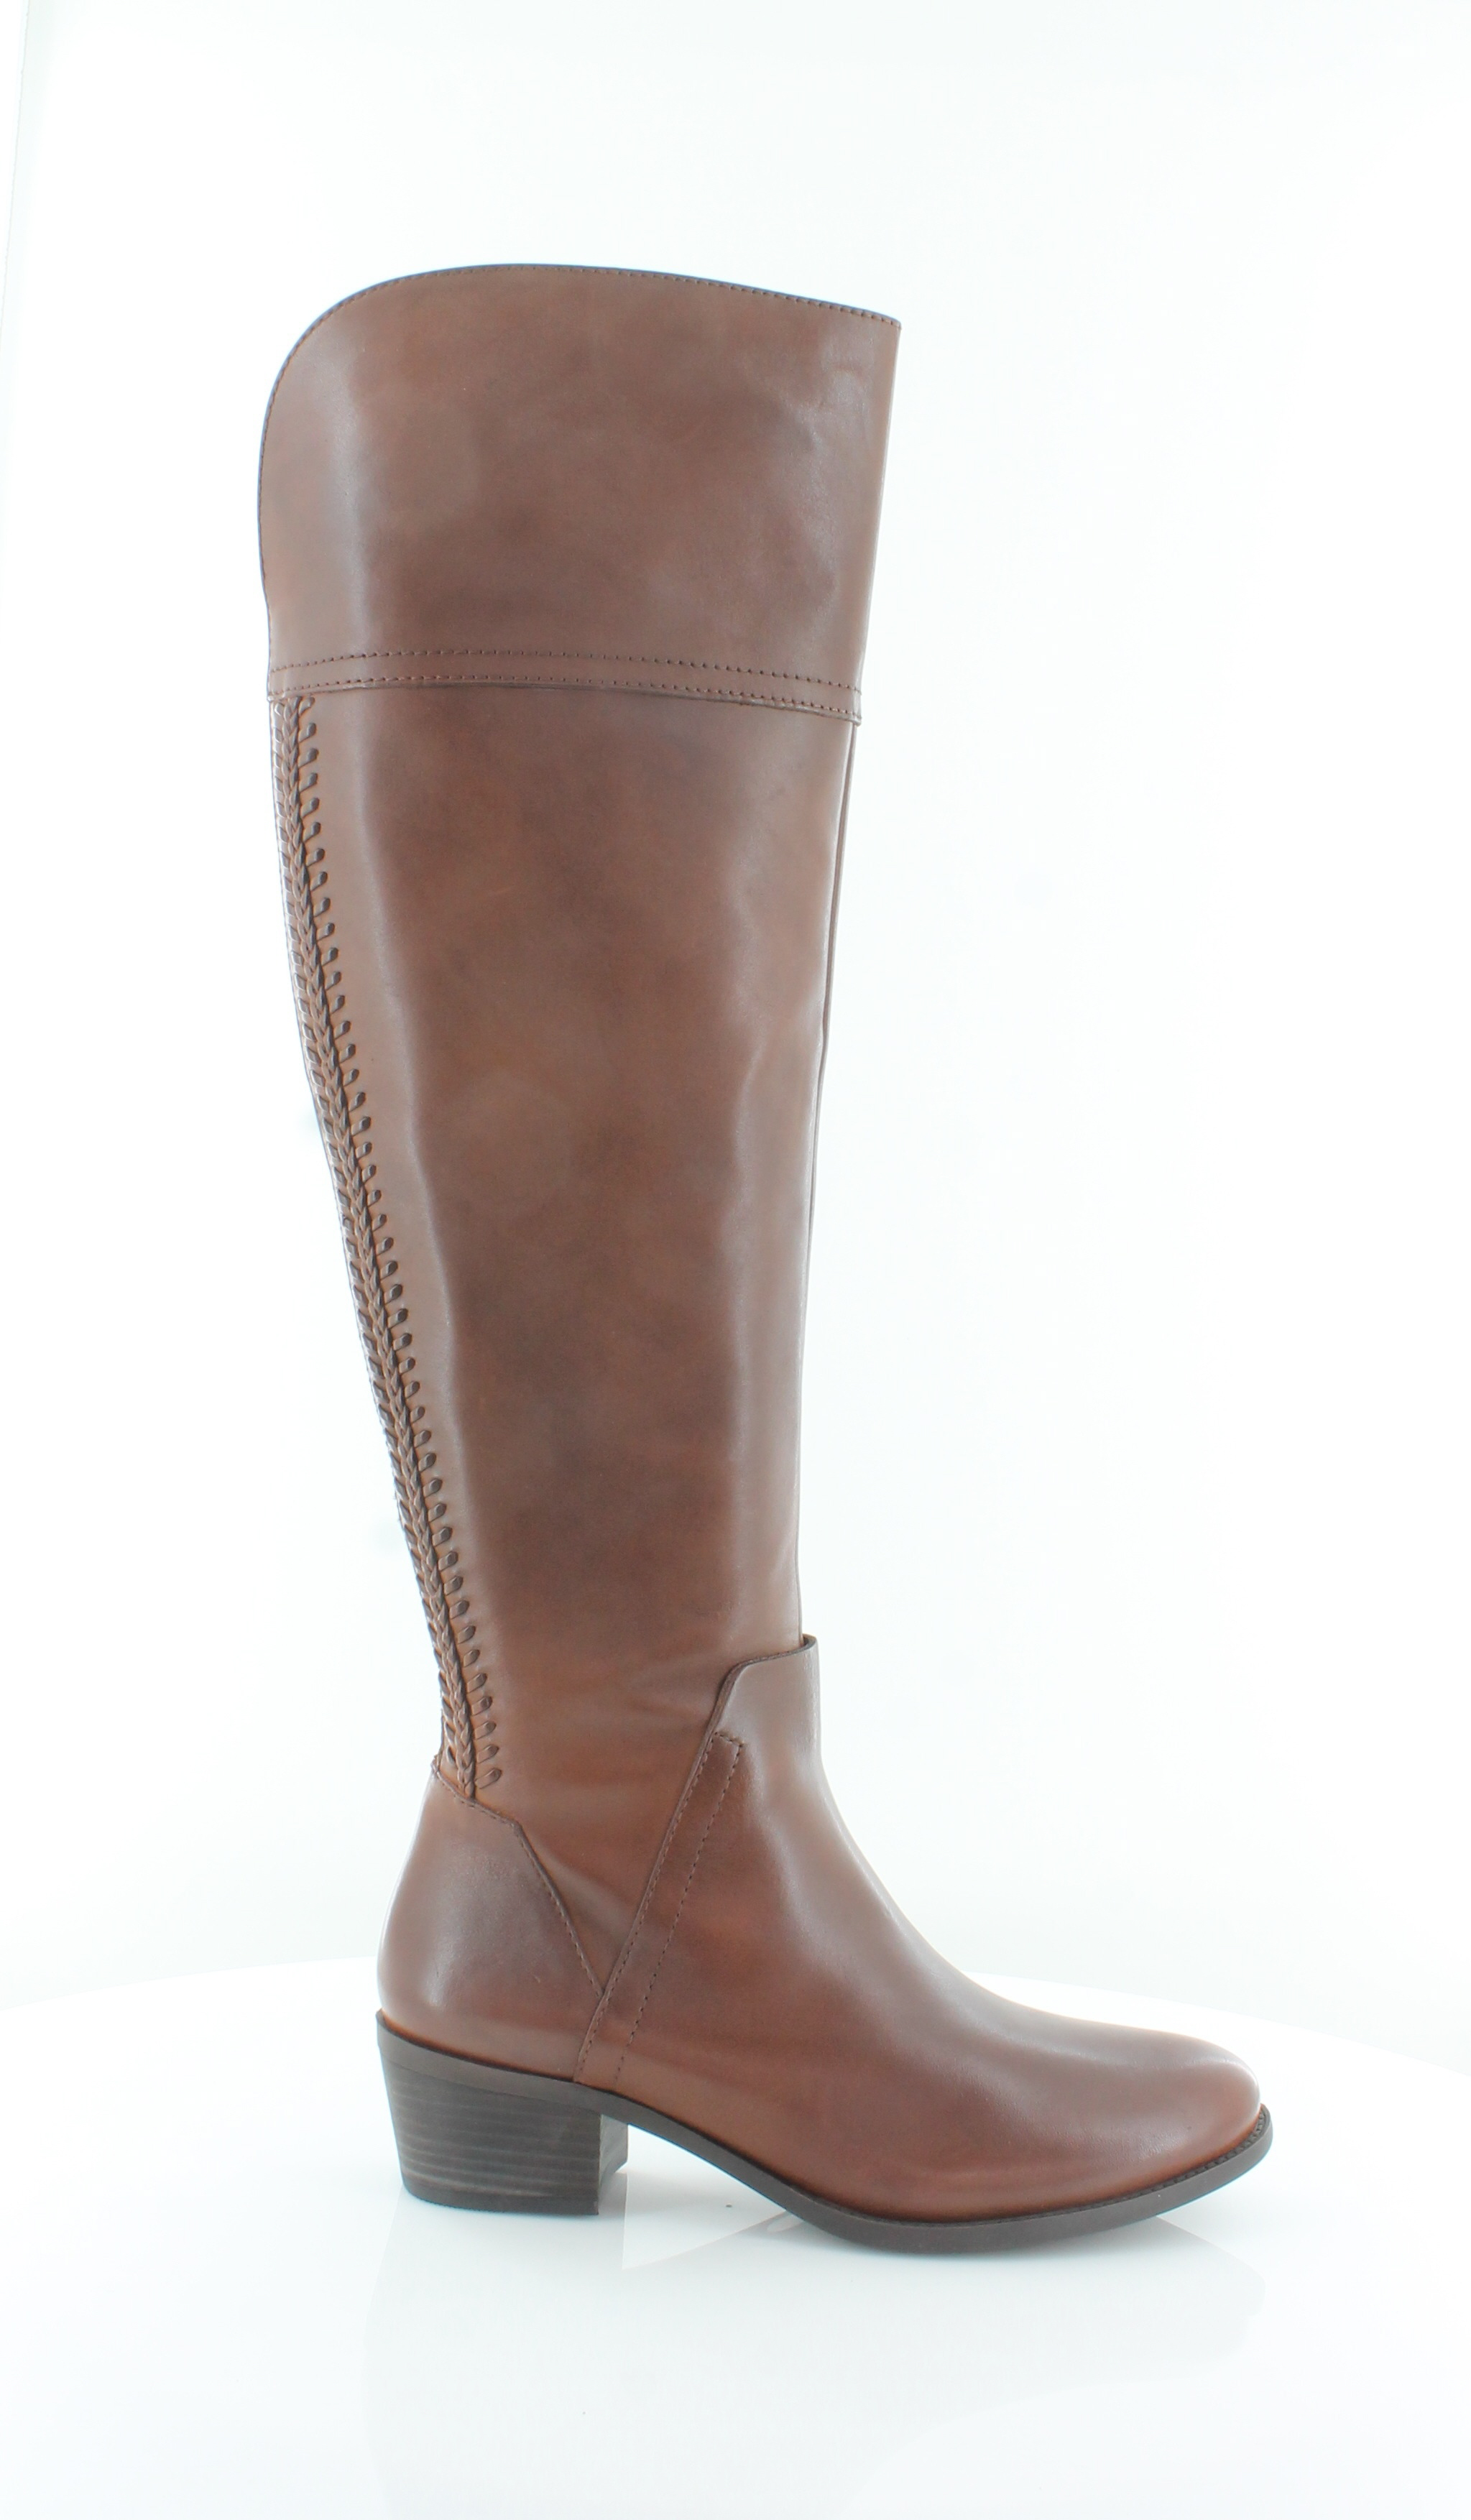 89eb96d2d0c Vince Camuto Bendra Brown Womens Shoes Size 8 M Boots MSRP  198